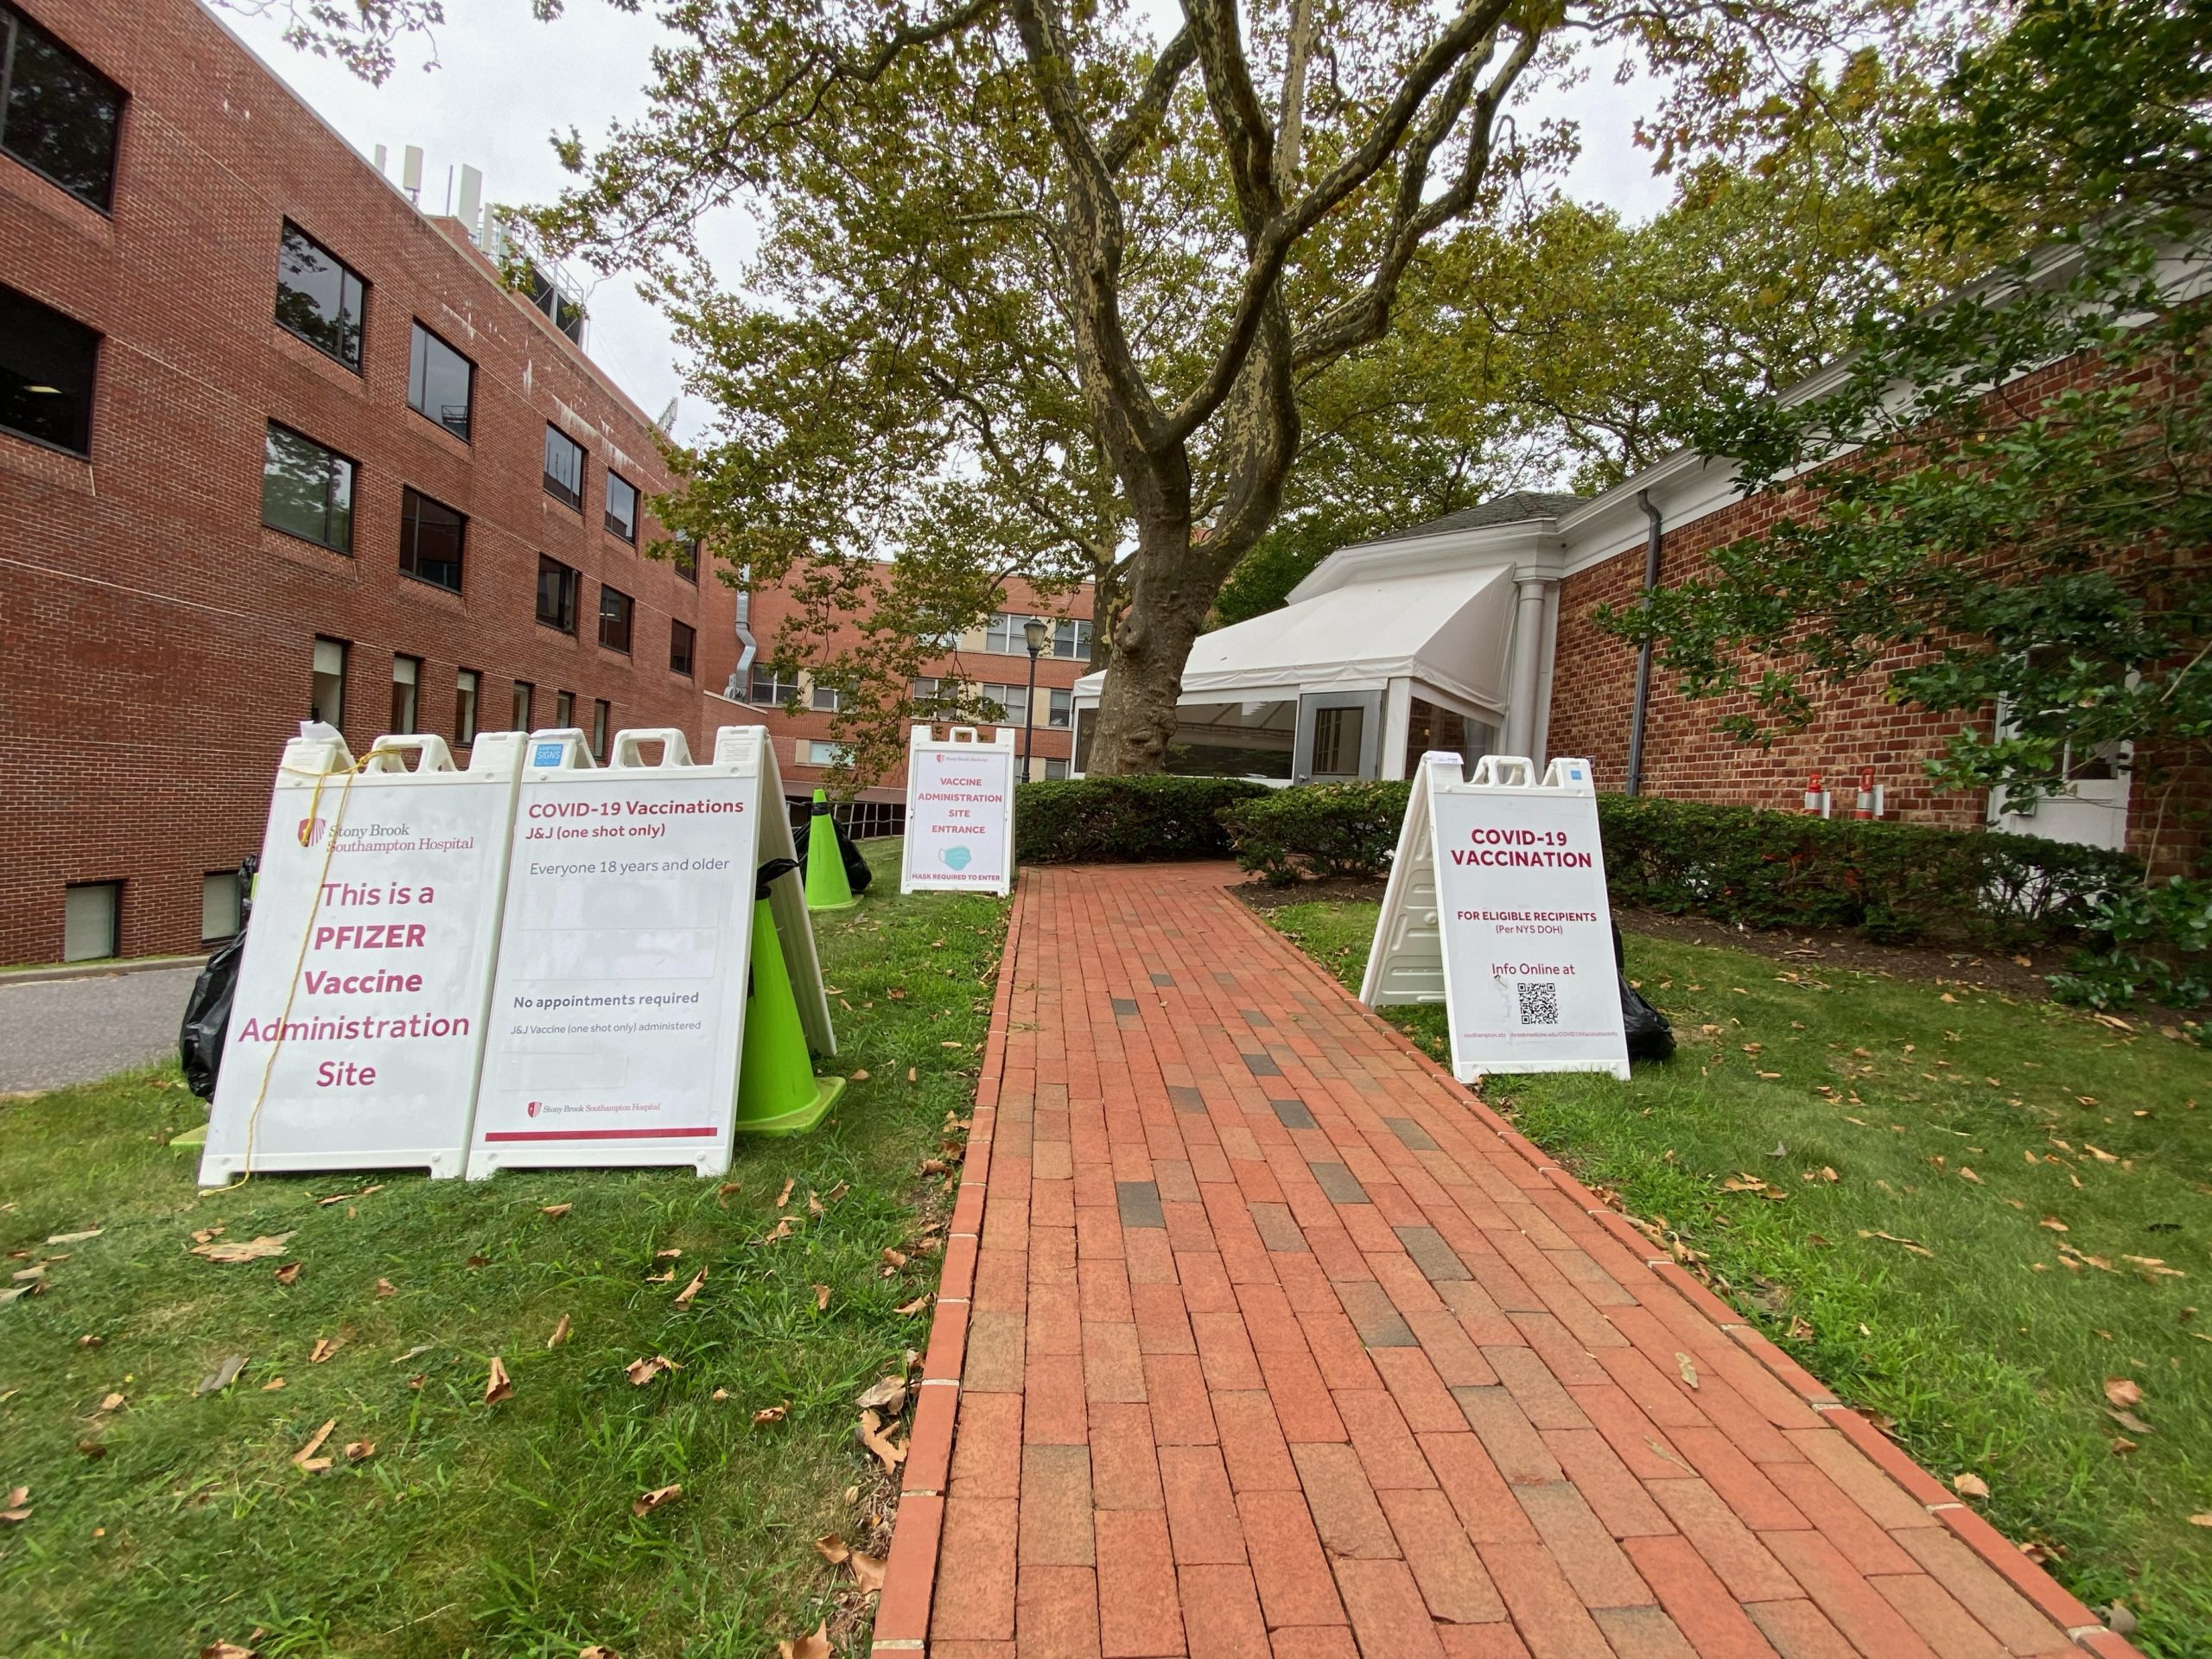 A walk-in vaccination clinic opened at Stony Brook Southampton Hospital on Tuesday. The clinic will offer vaccinations without appointment, prescription or charge, on Tuesdays, Wednesdays and Thursdays from noon to 6 p.m.